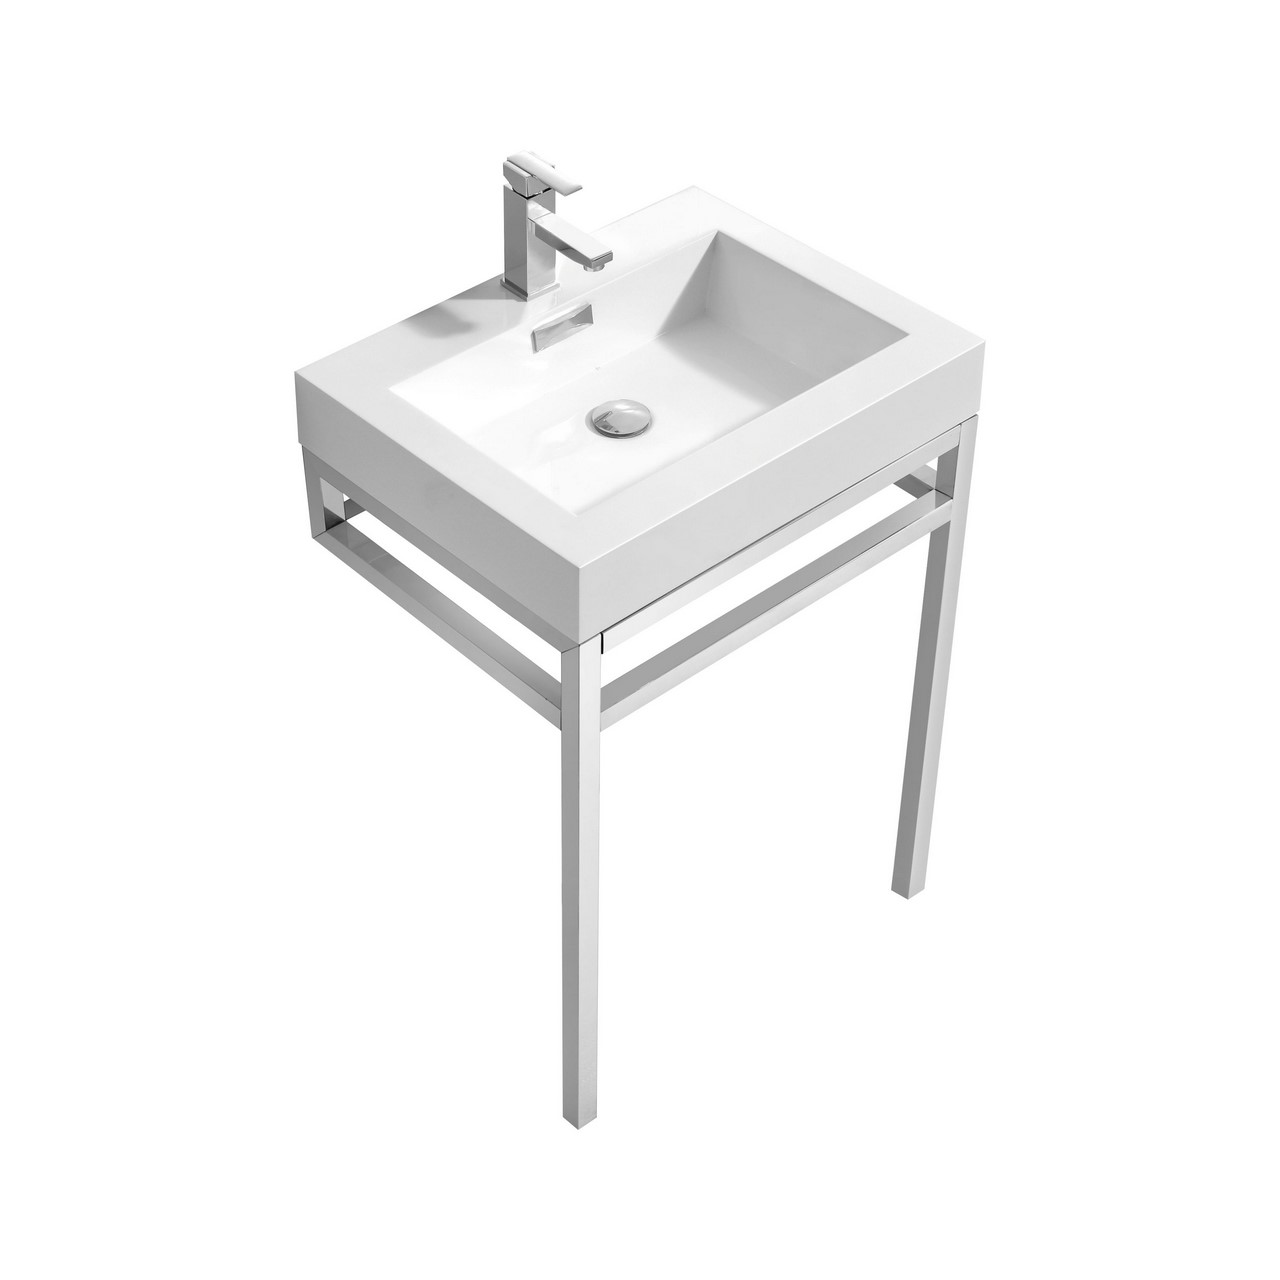 Haus 24 Quot Stainless Steel Console W White Acrylic Sink